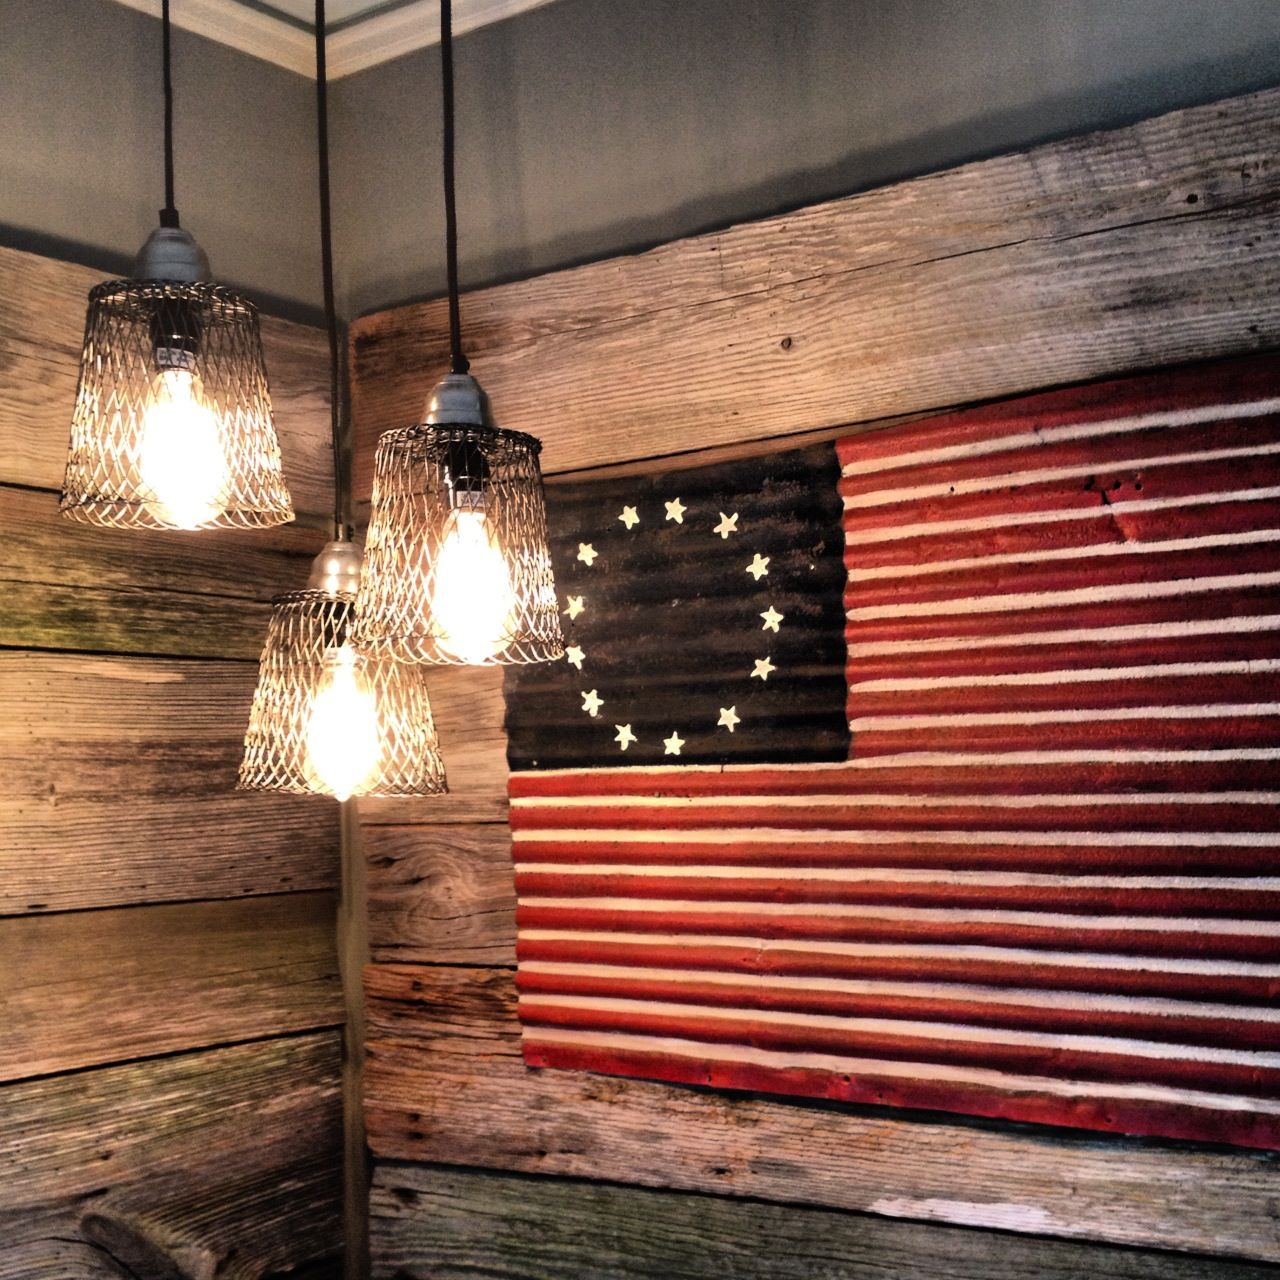 Old Barn Boards W Old Tin Into A Flag Canning Kitchen Barn